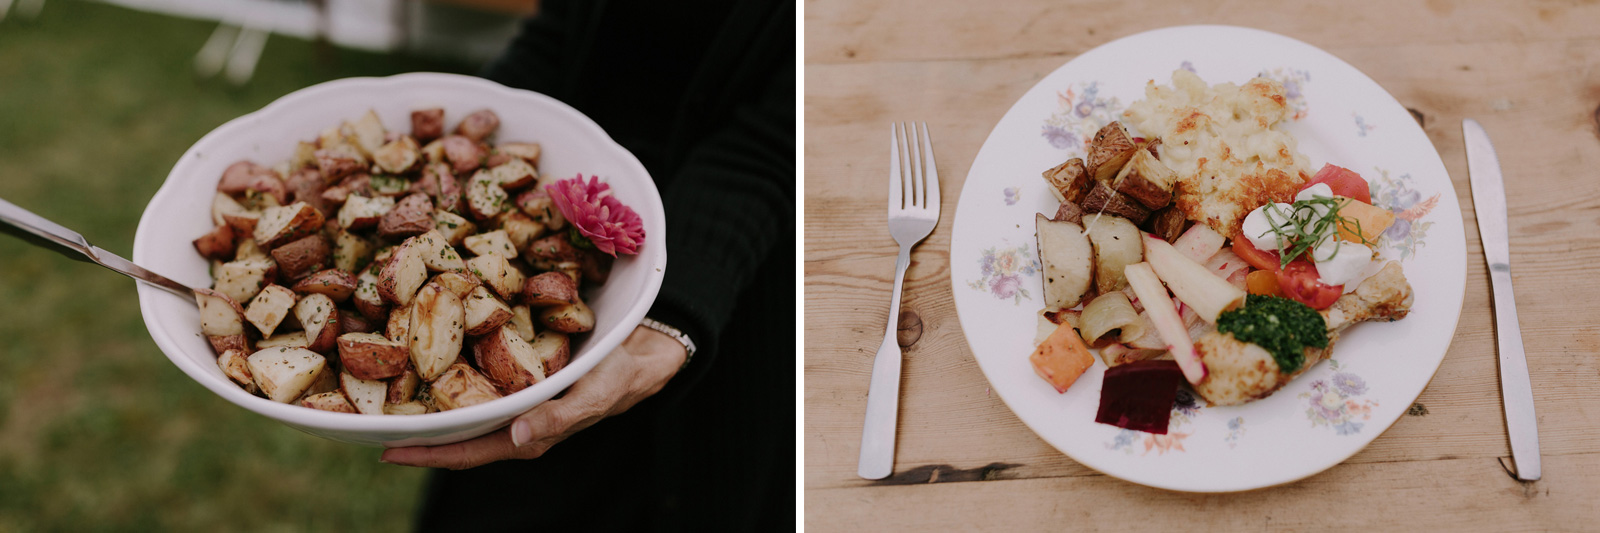 vermont-food-catering